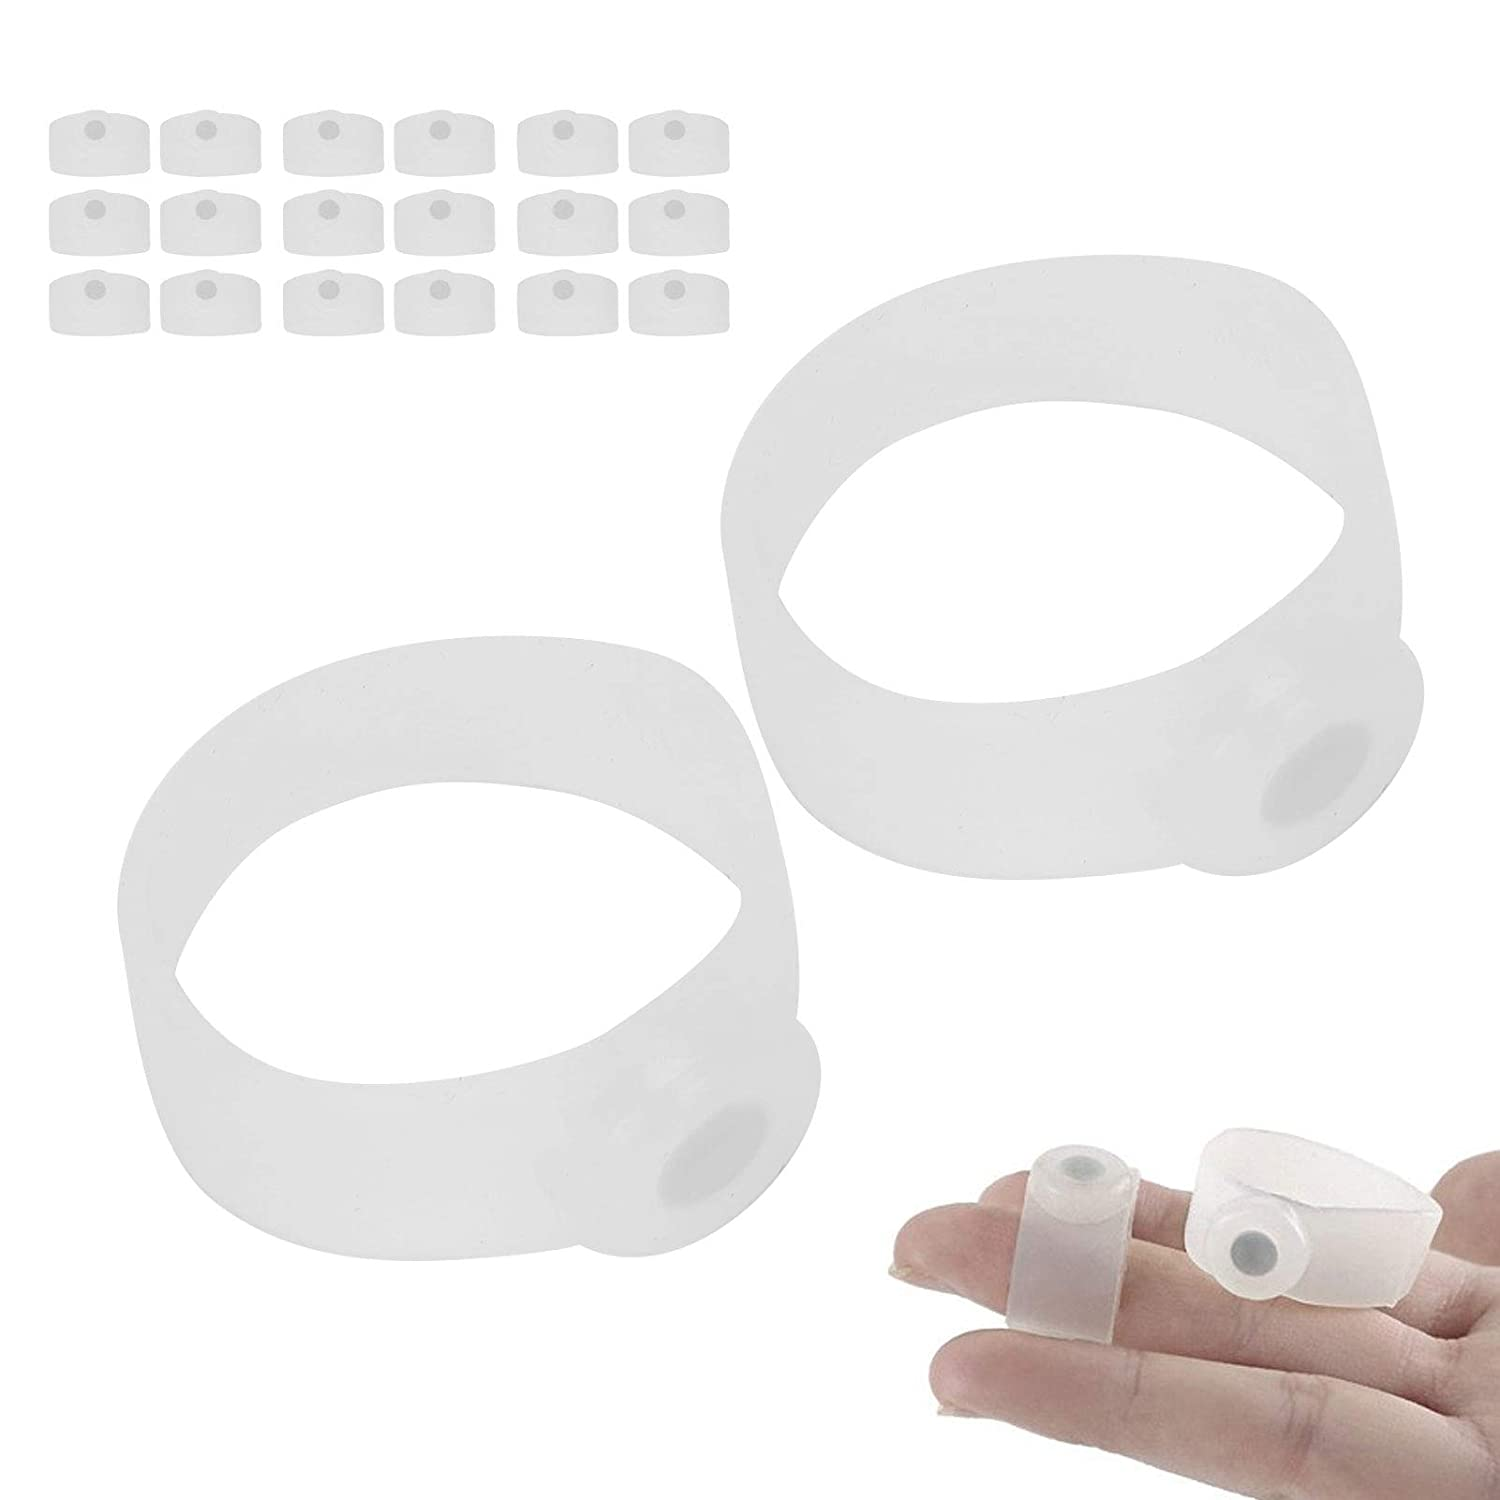 Magnetic Toe Transparent White Slimming Silicone Quantity limited f Home sold out for